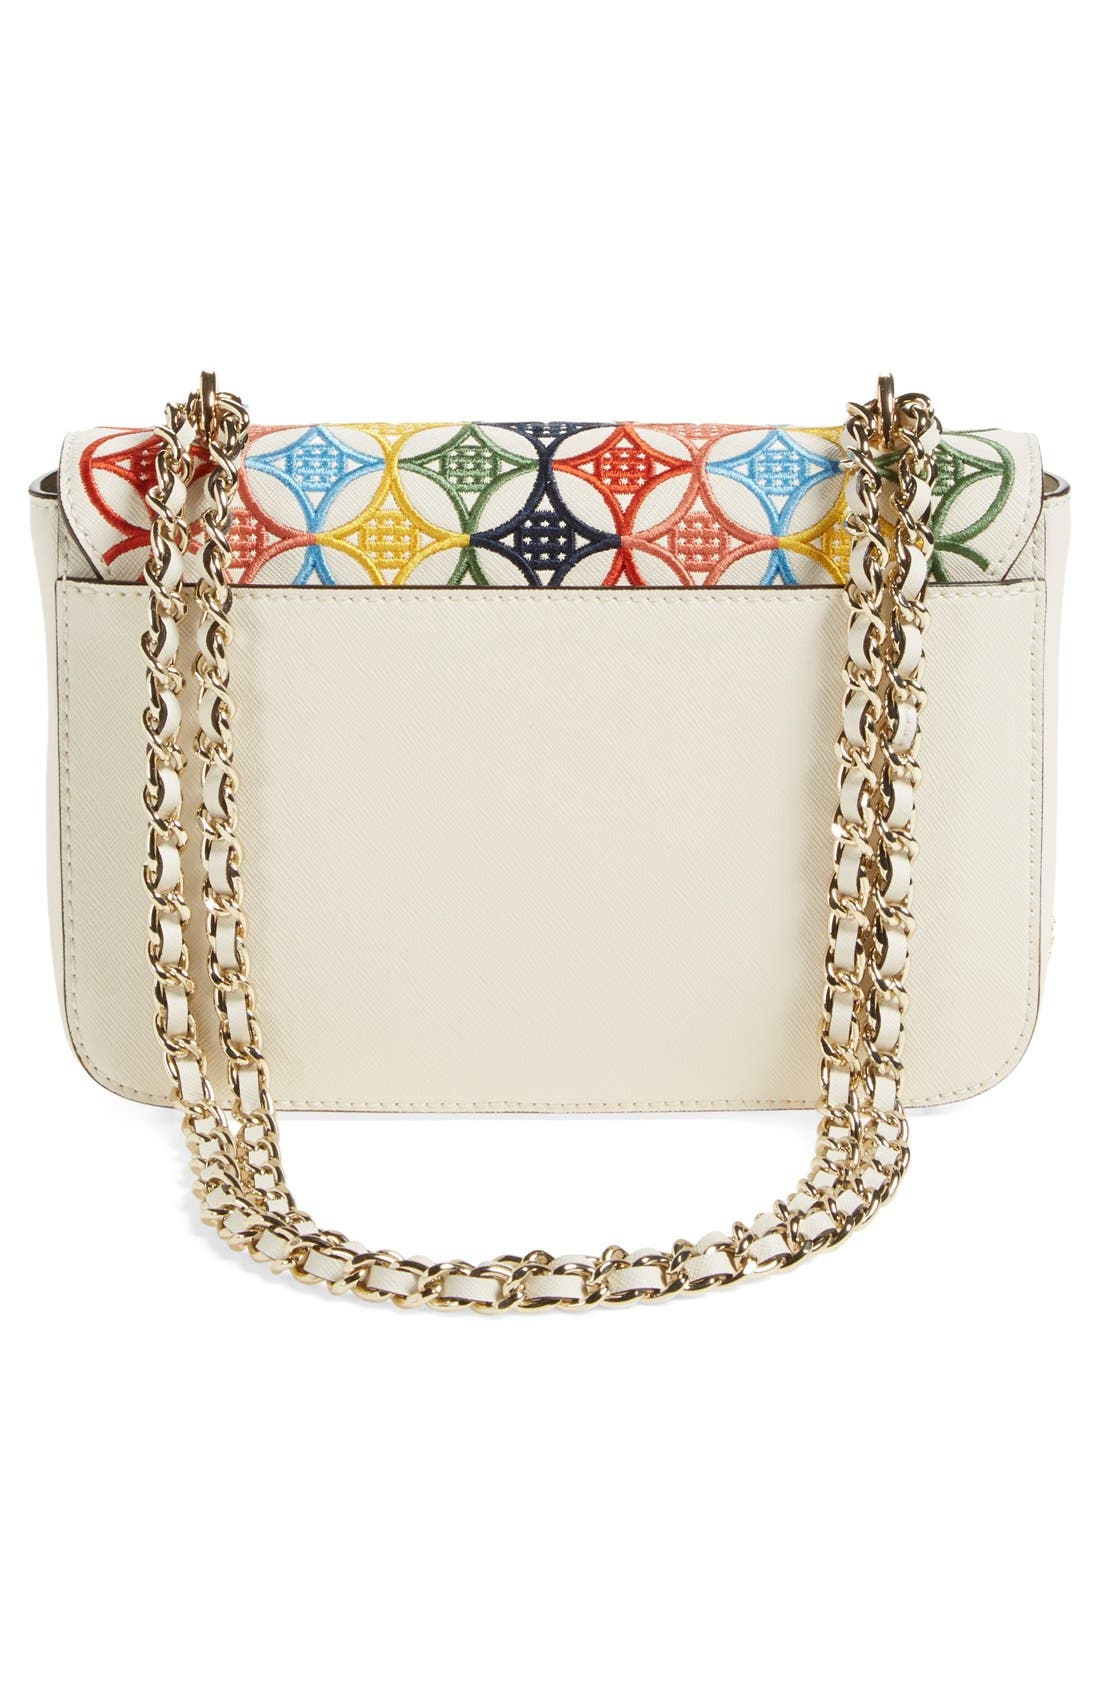 Alternate Image 3  - Tory Burch 'Robinson' Embroidered Shoulder Bag